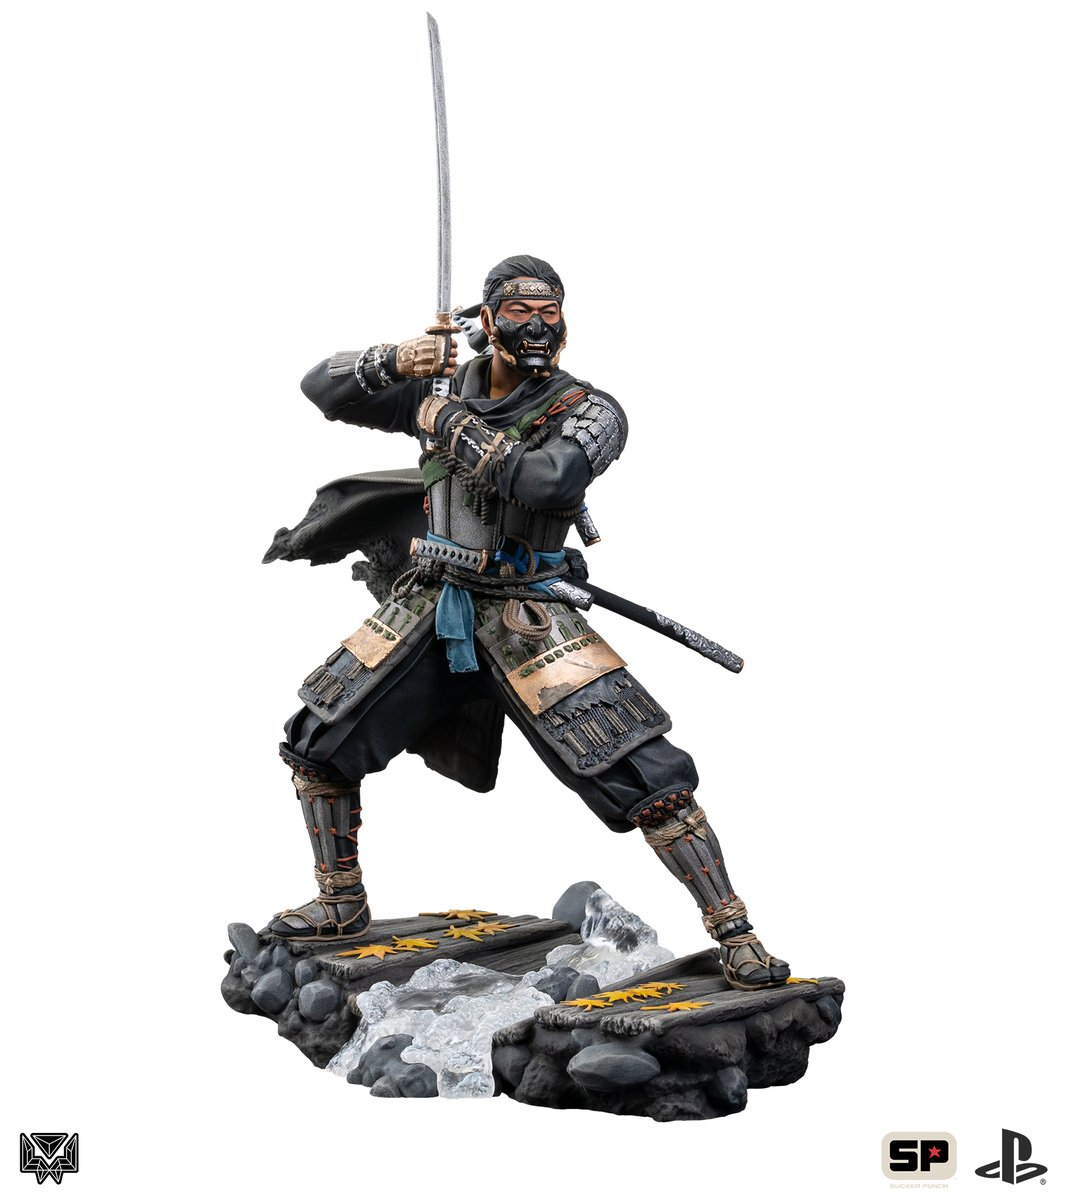 "From @Level52Studios, this new 9.75"" #GhostOfTsushima polystone statue is now available for pre-order, featuring a beautifully detailed sculpt and custom base.  Find more photos and pre-order here:"